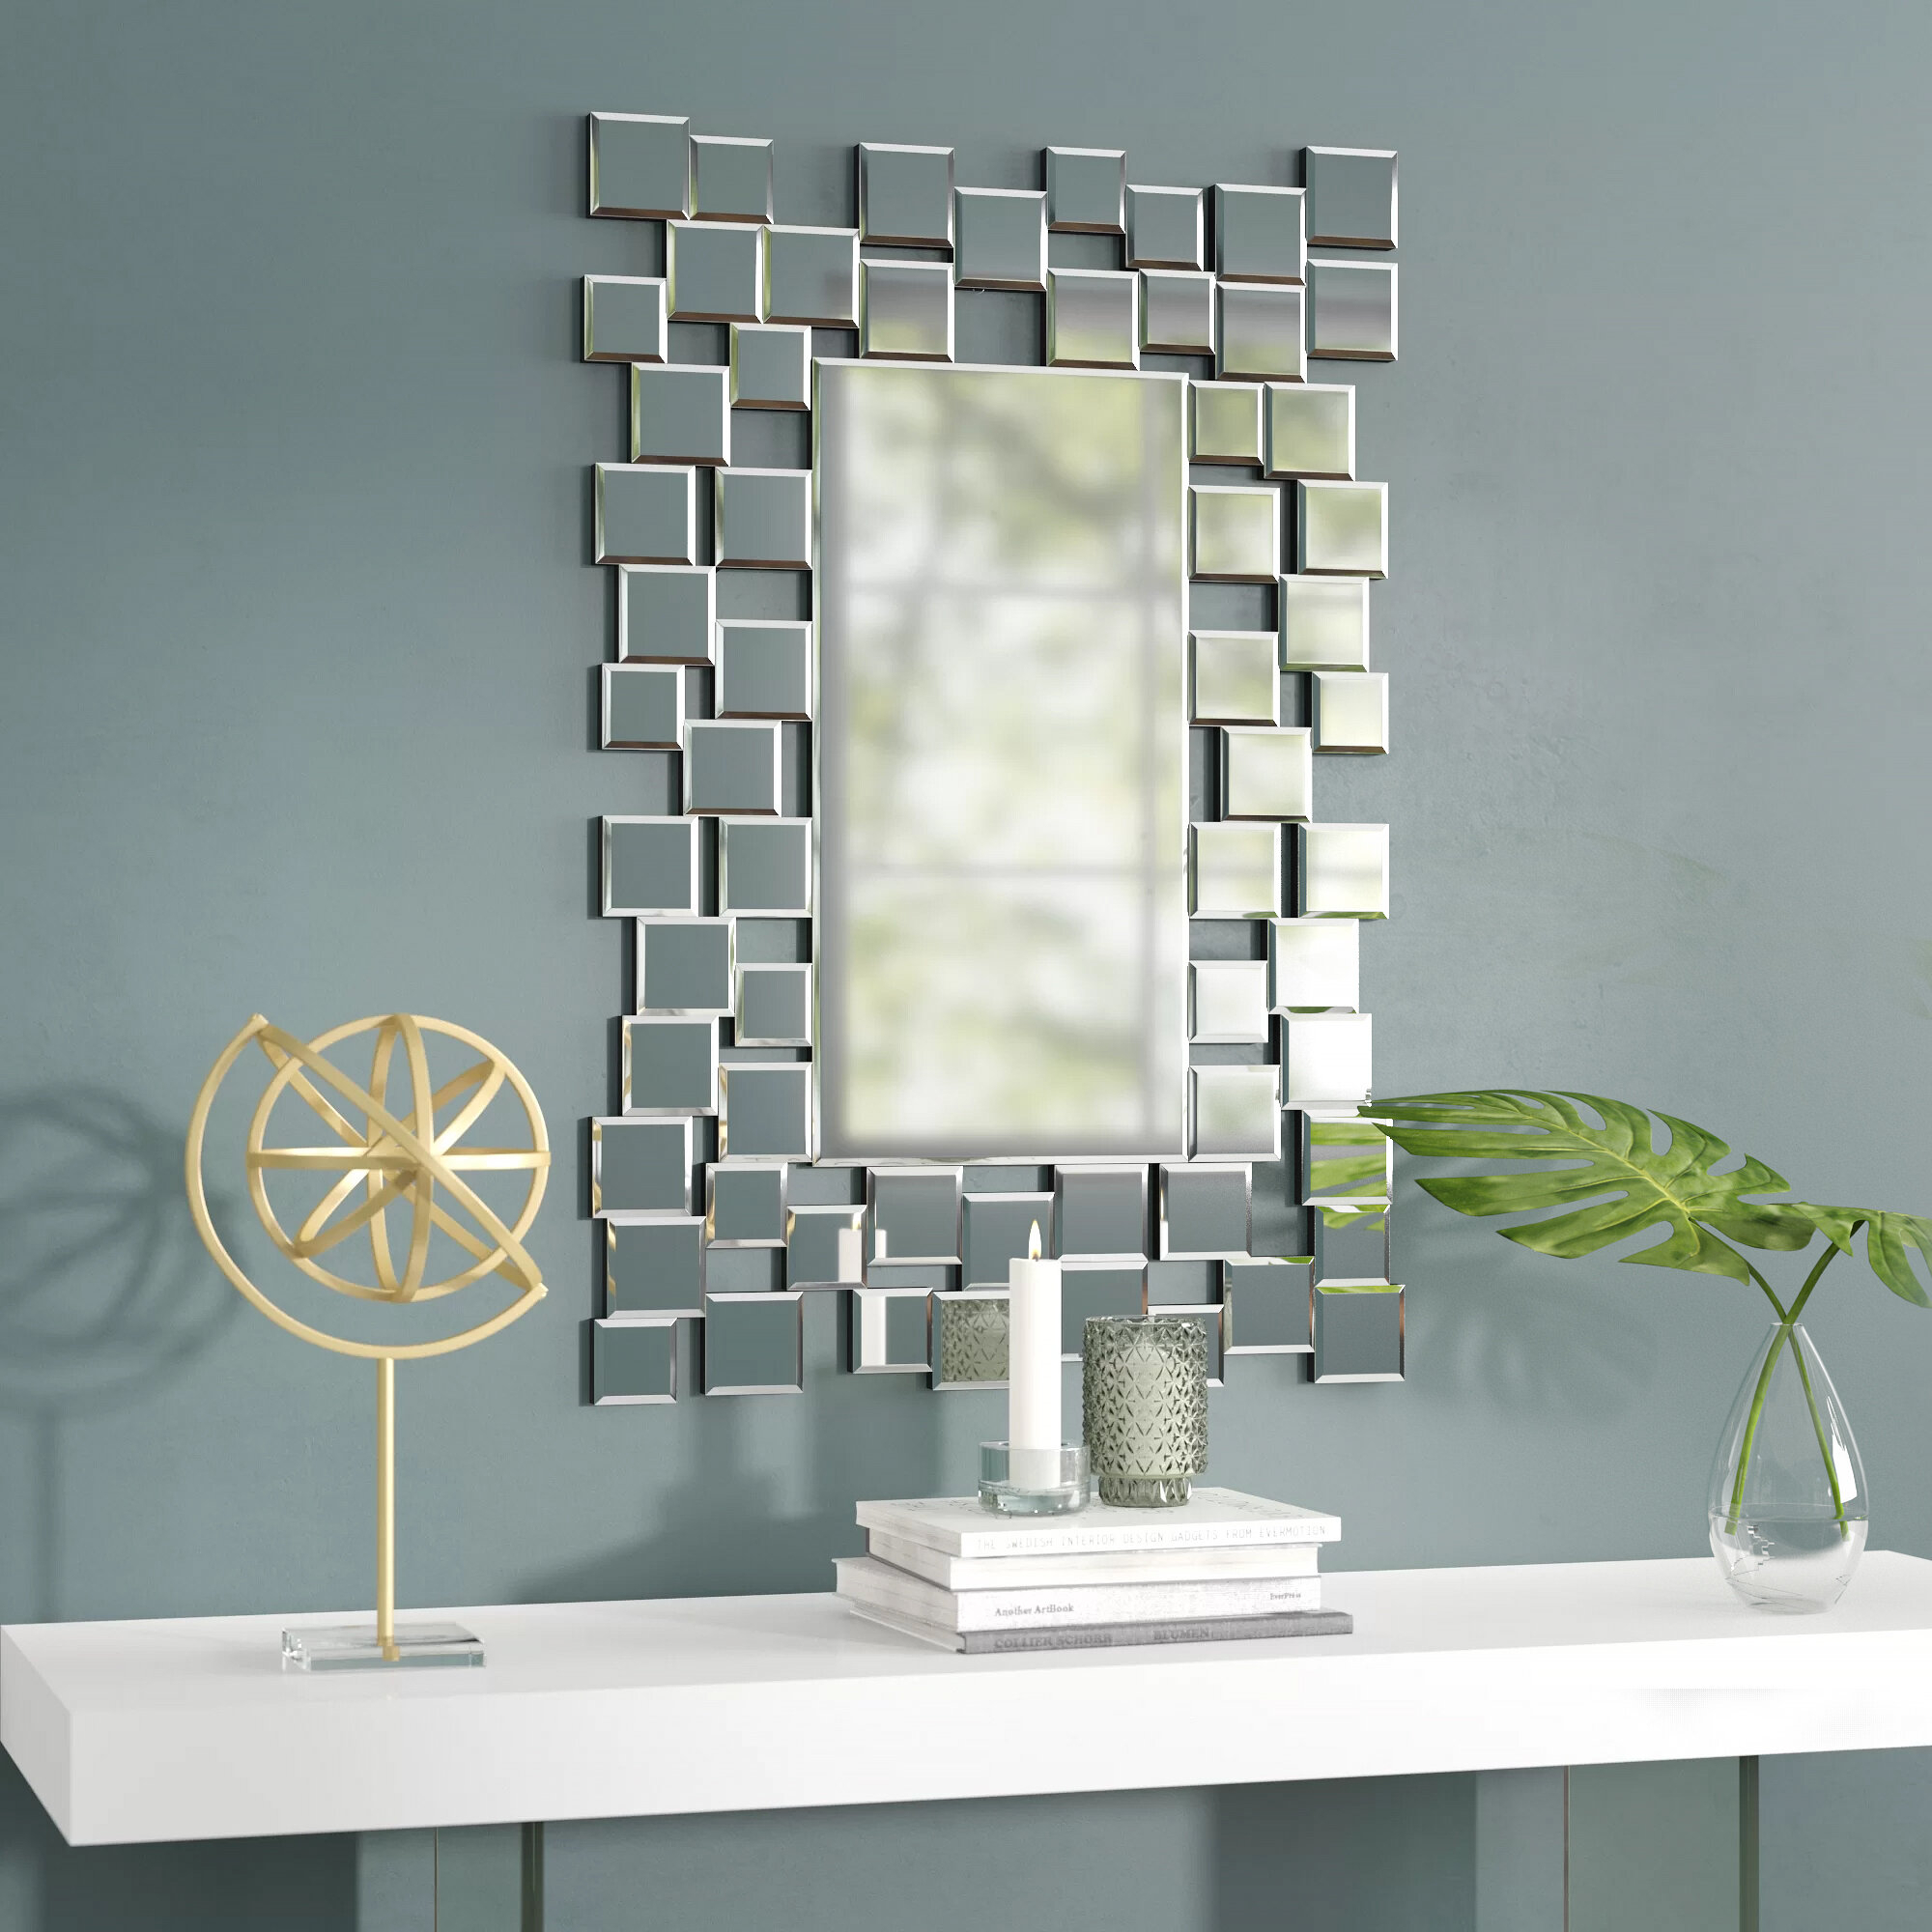 Brayden Studio Modern & Contemporary Accent Wall Mirror Intended For Pennsburg Rectangle Wall Mirror By Wade Logan (View 5 of 30)